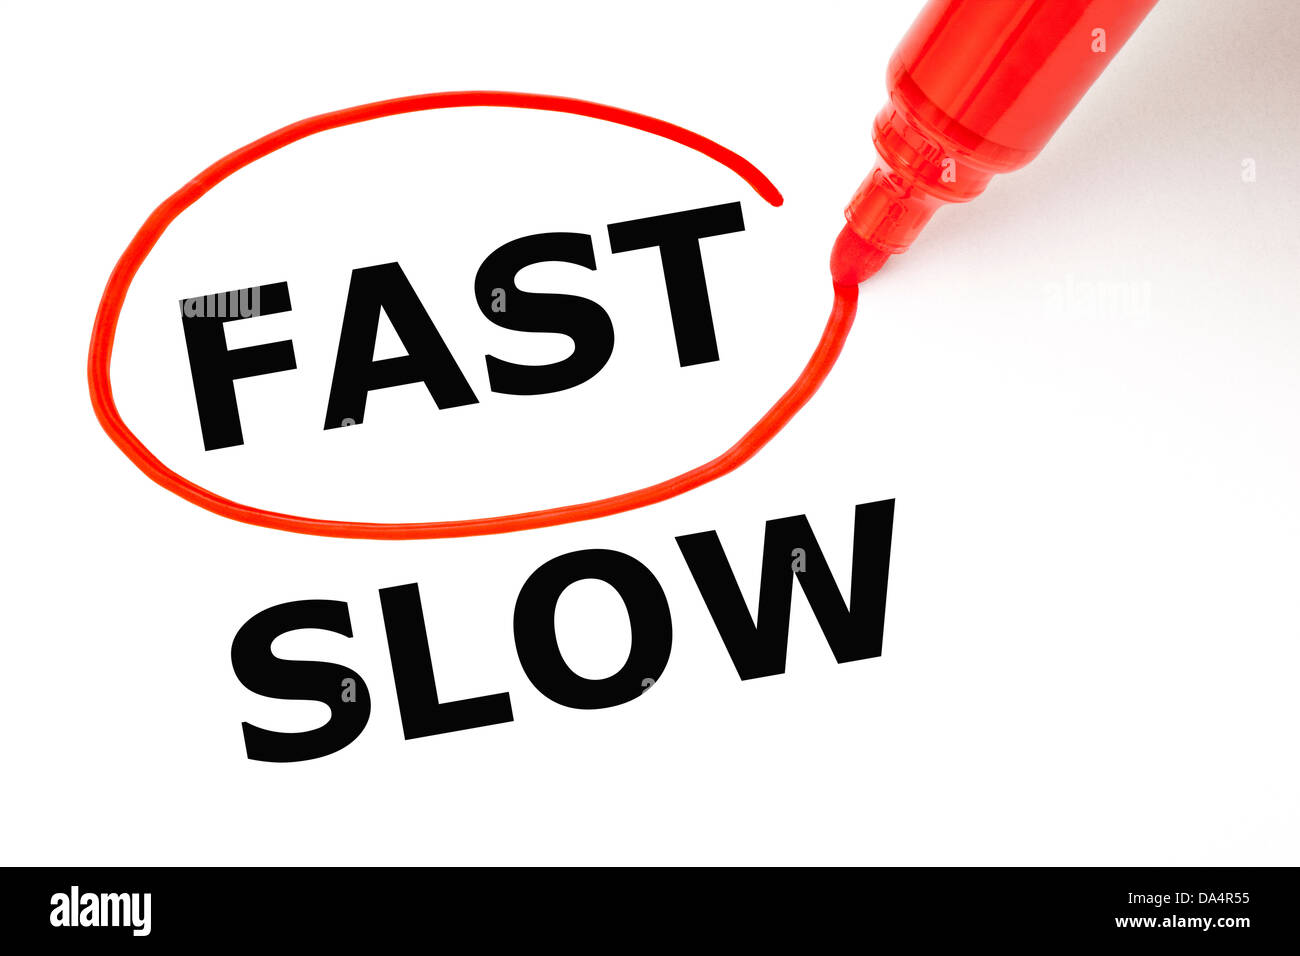 Choosing Fast instead of Slow. Fast selected with red marker. - Stock Image